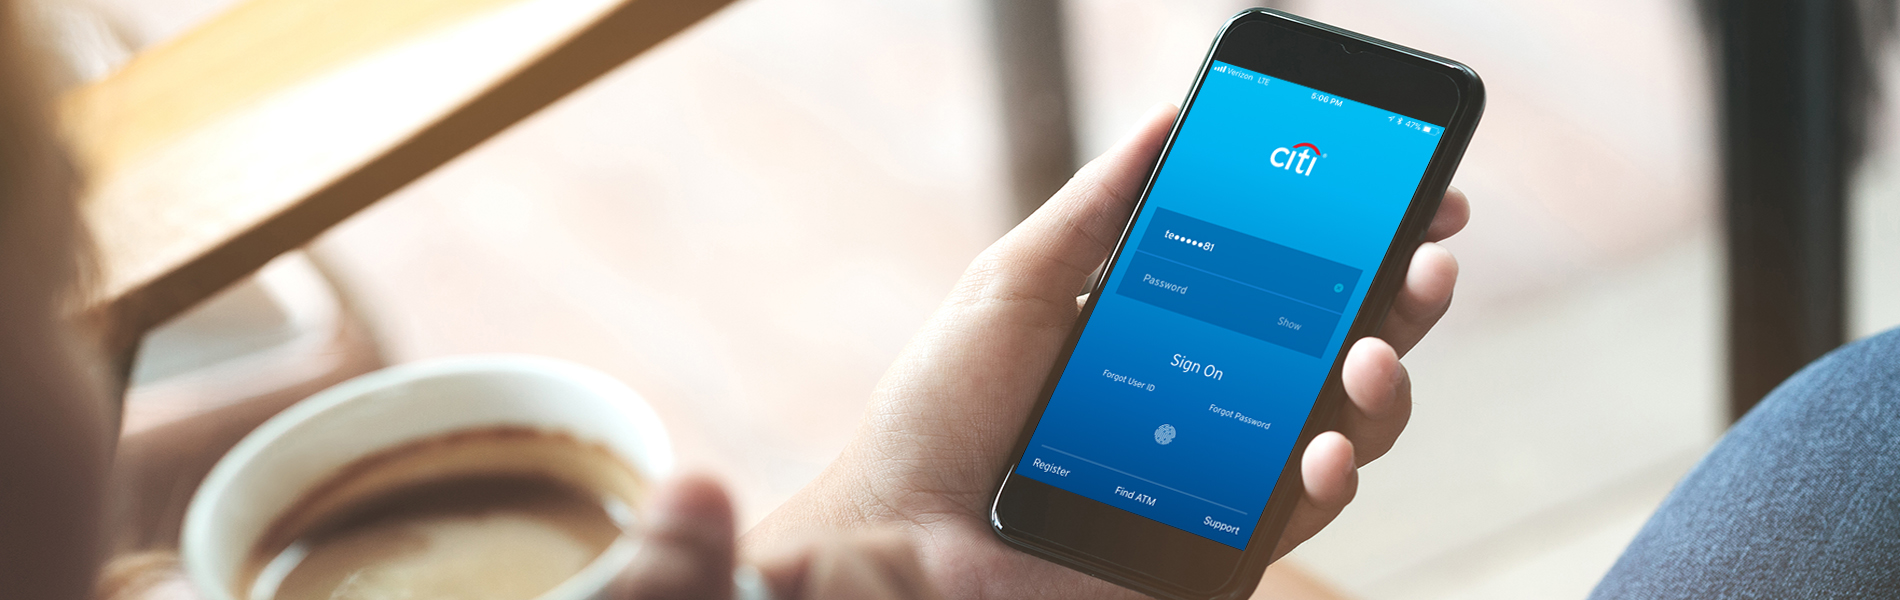 A person holding a smartphone with the Citi mobile banking app open.